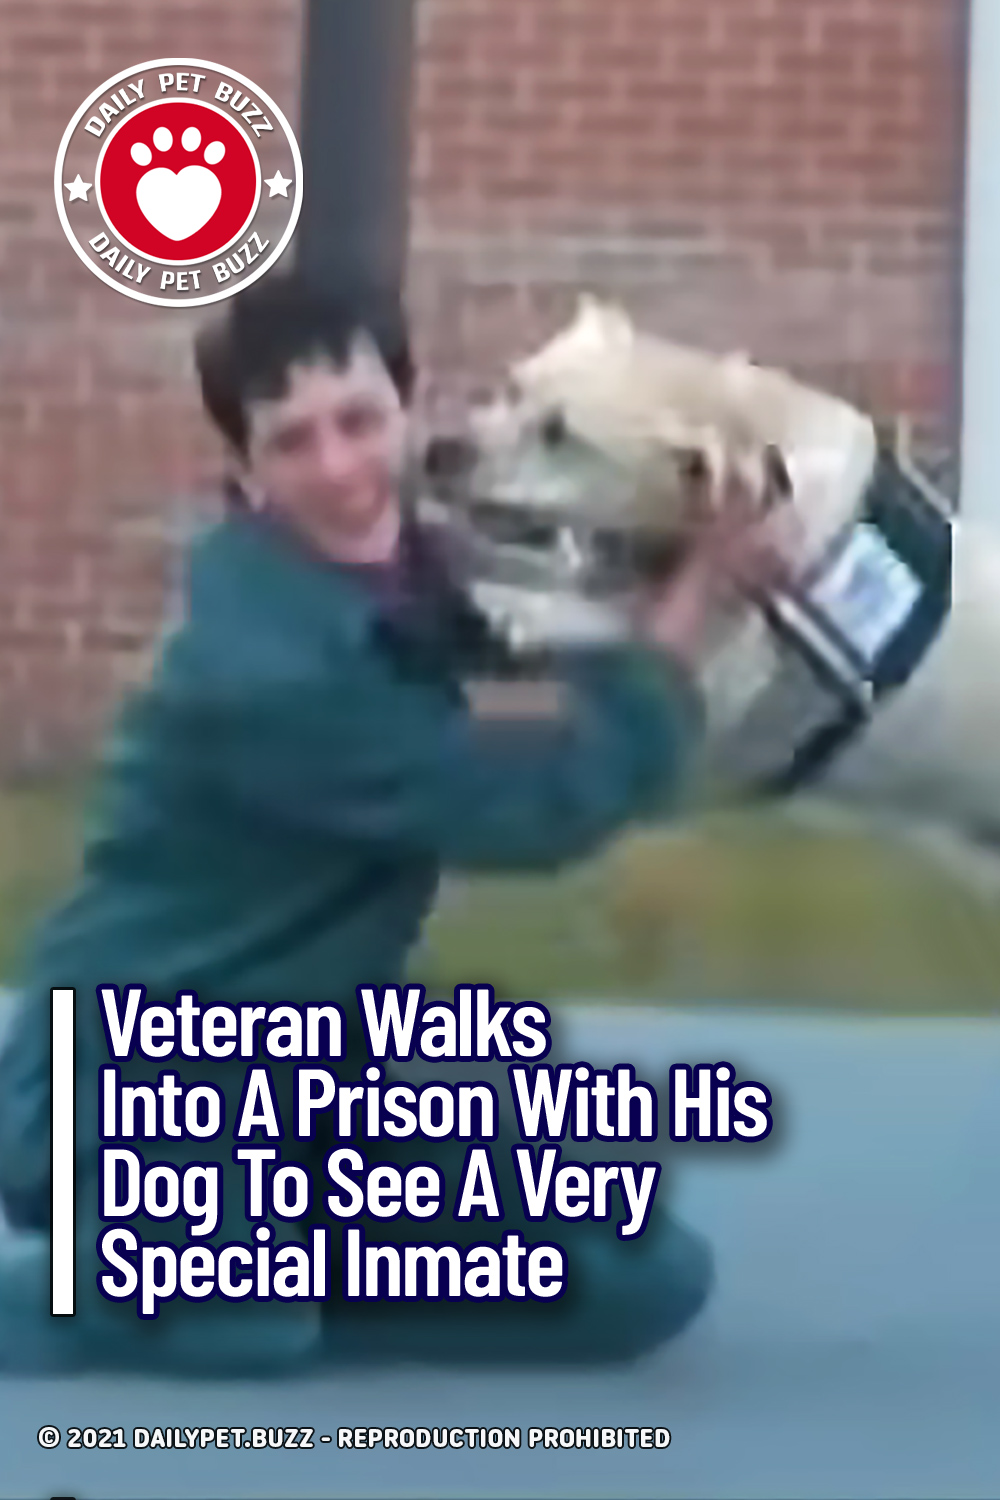 Veteran Walks Into A Prison With His Dog To See A Very Special Inmate